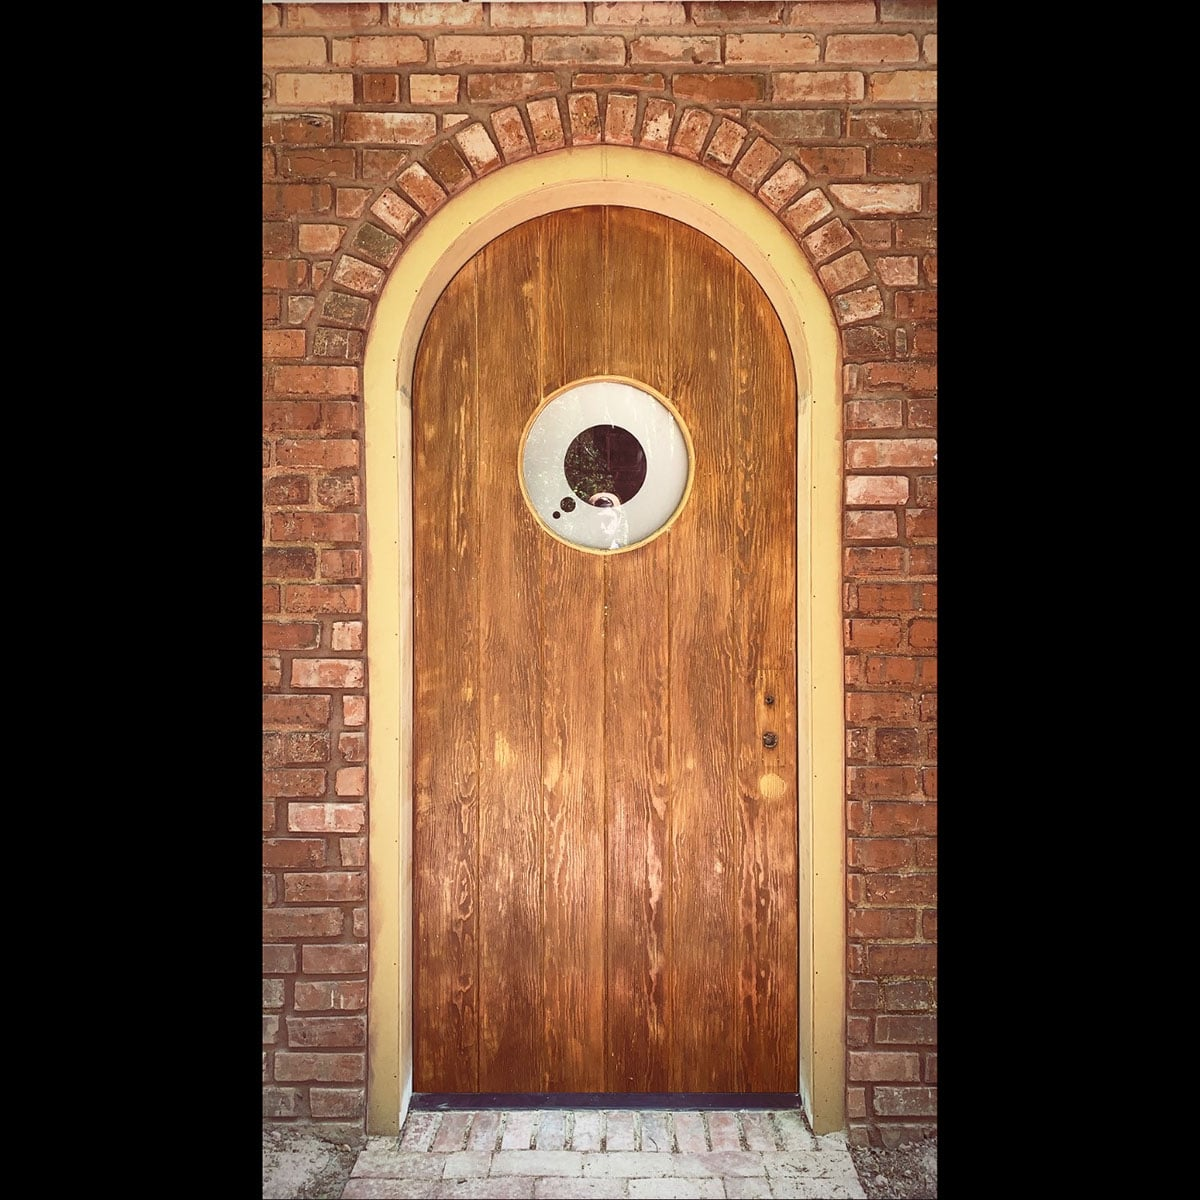 Custom rounded wood door with frosted circular window